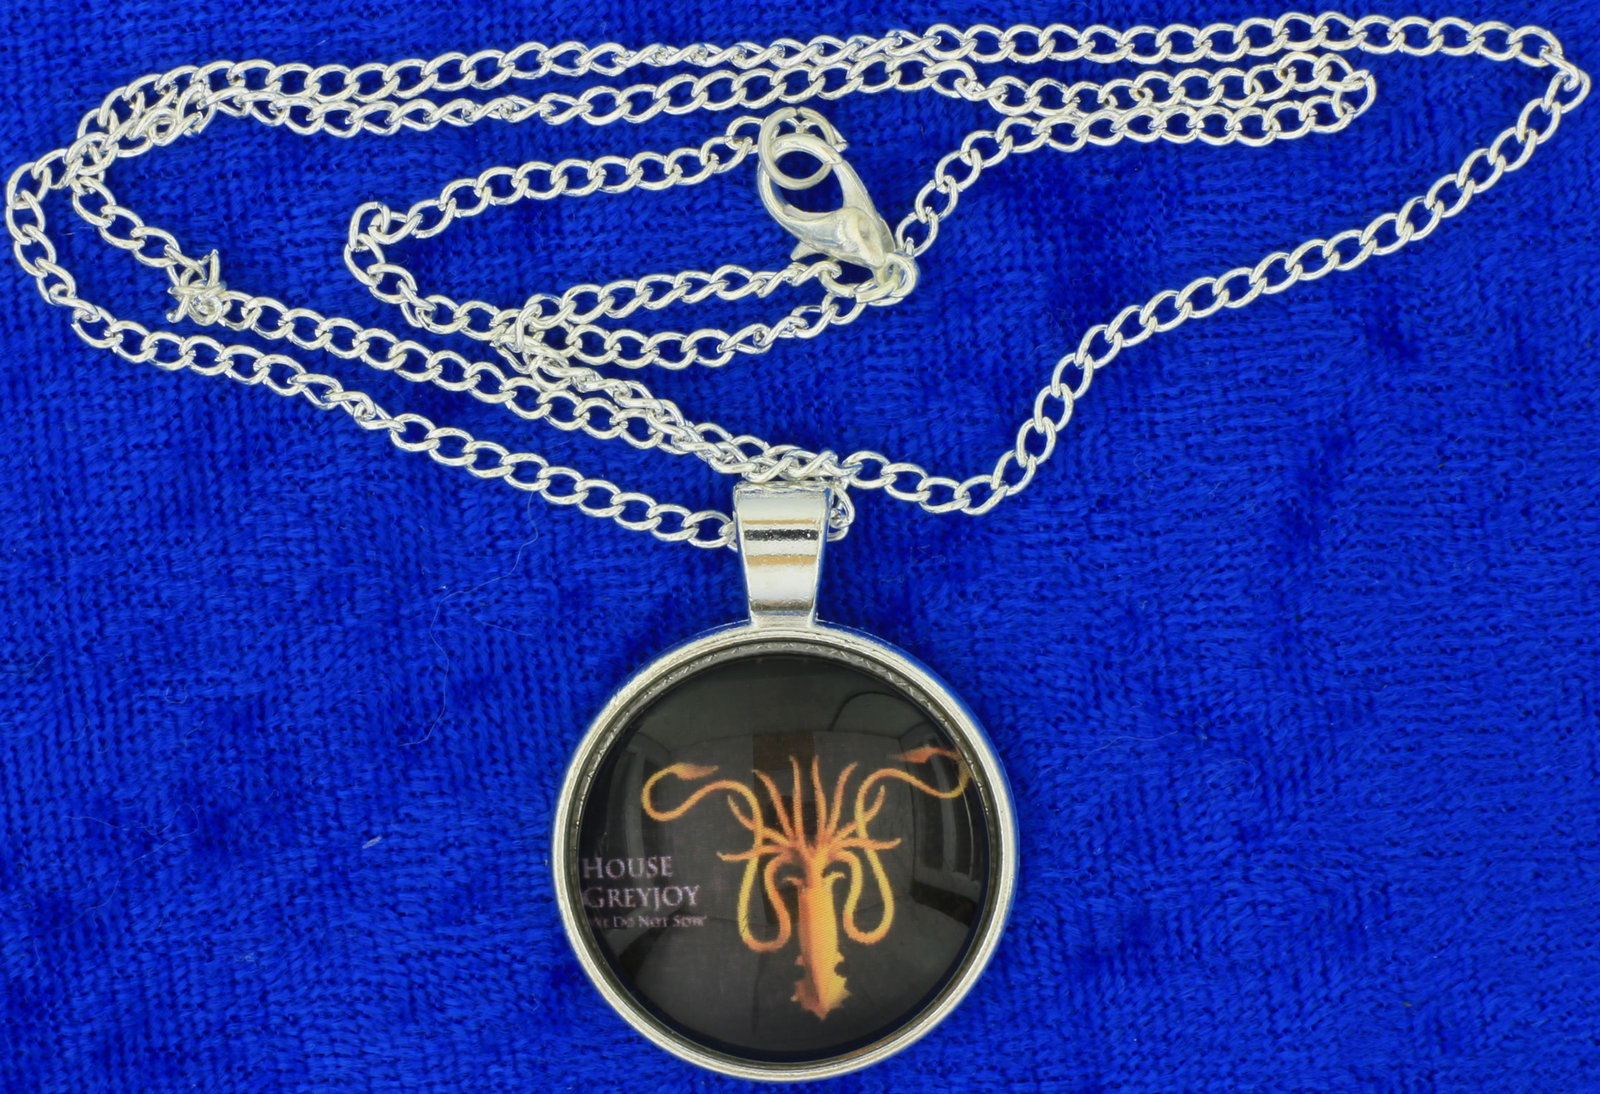 House greyjoy necklace